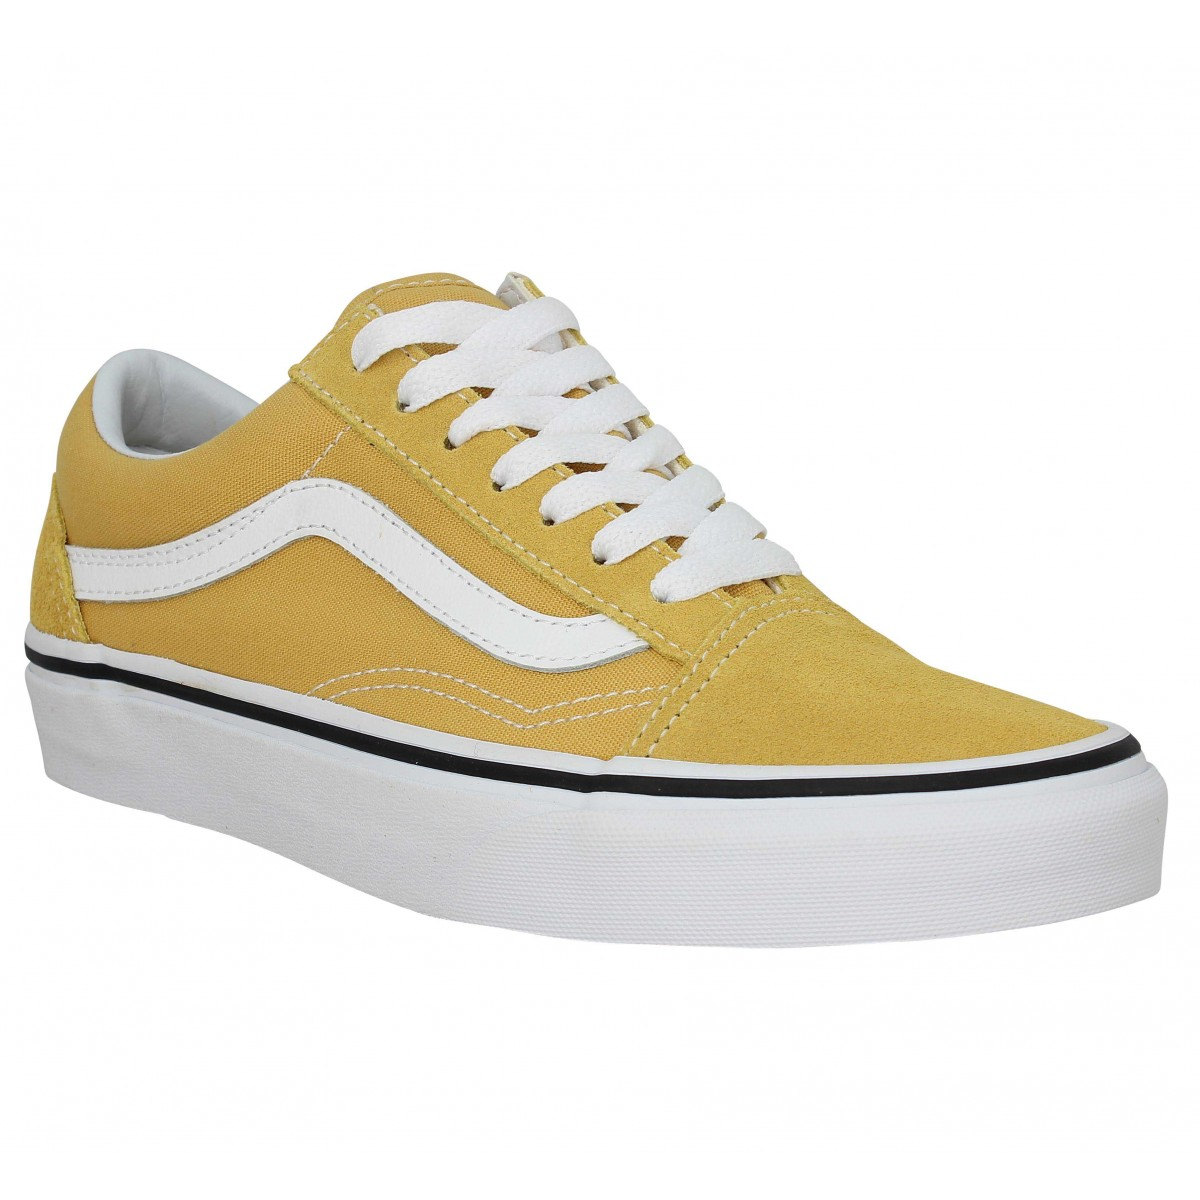 Baskets VANS Old Skool velours toile Ocre